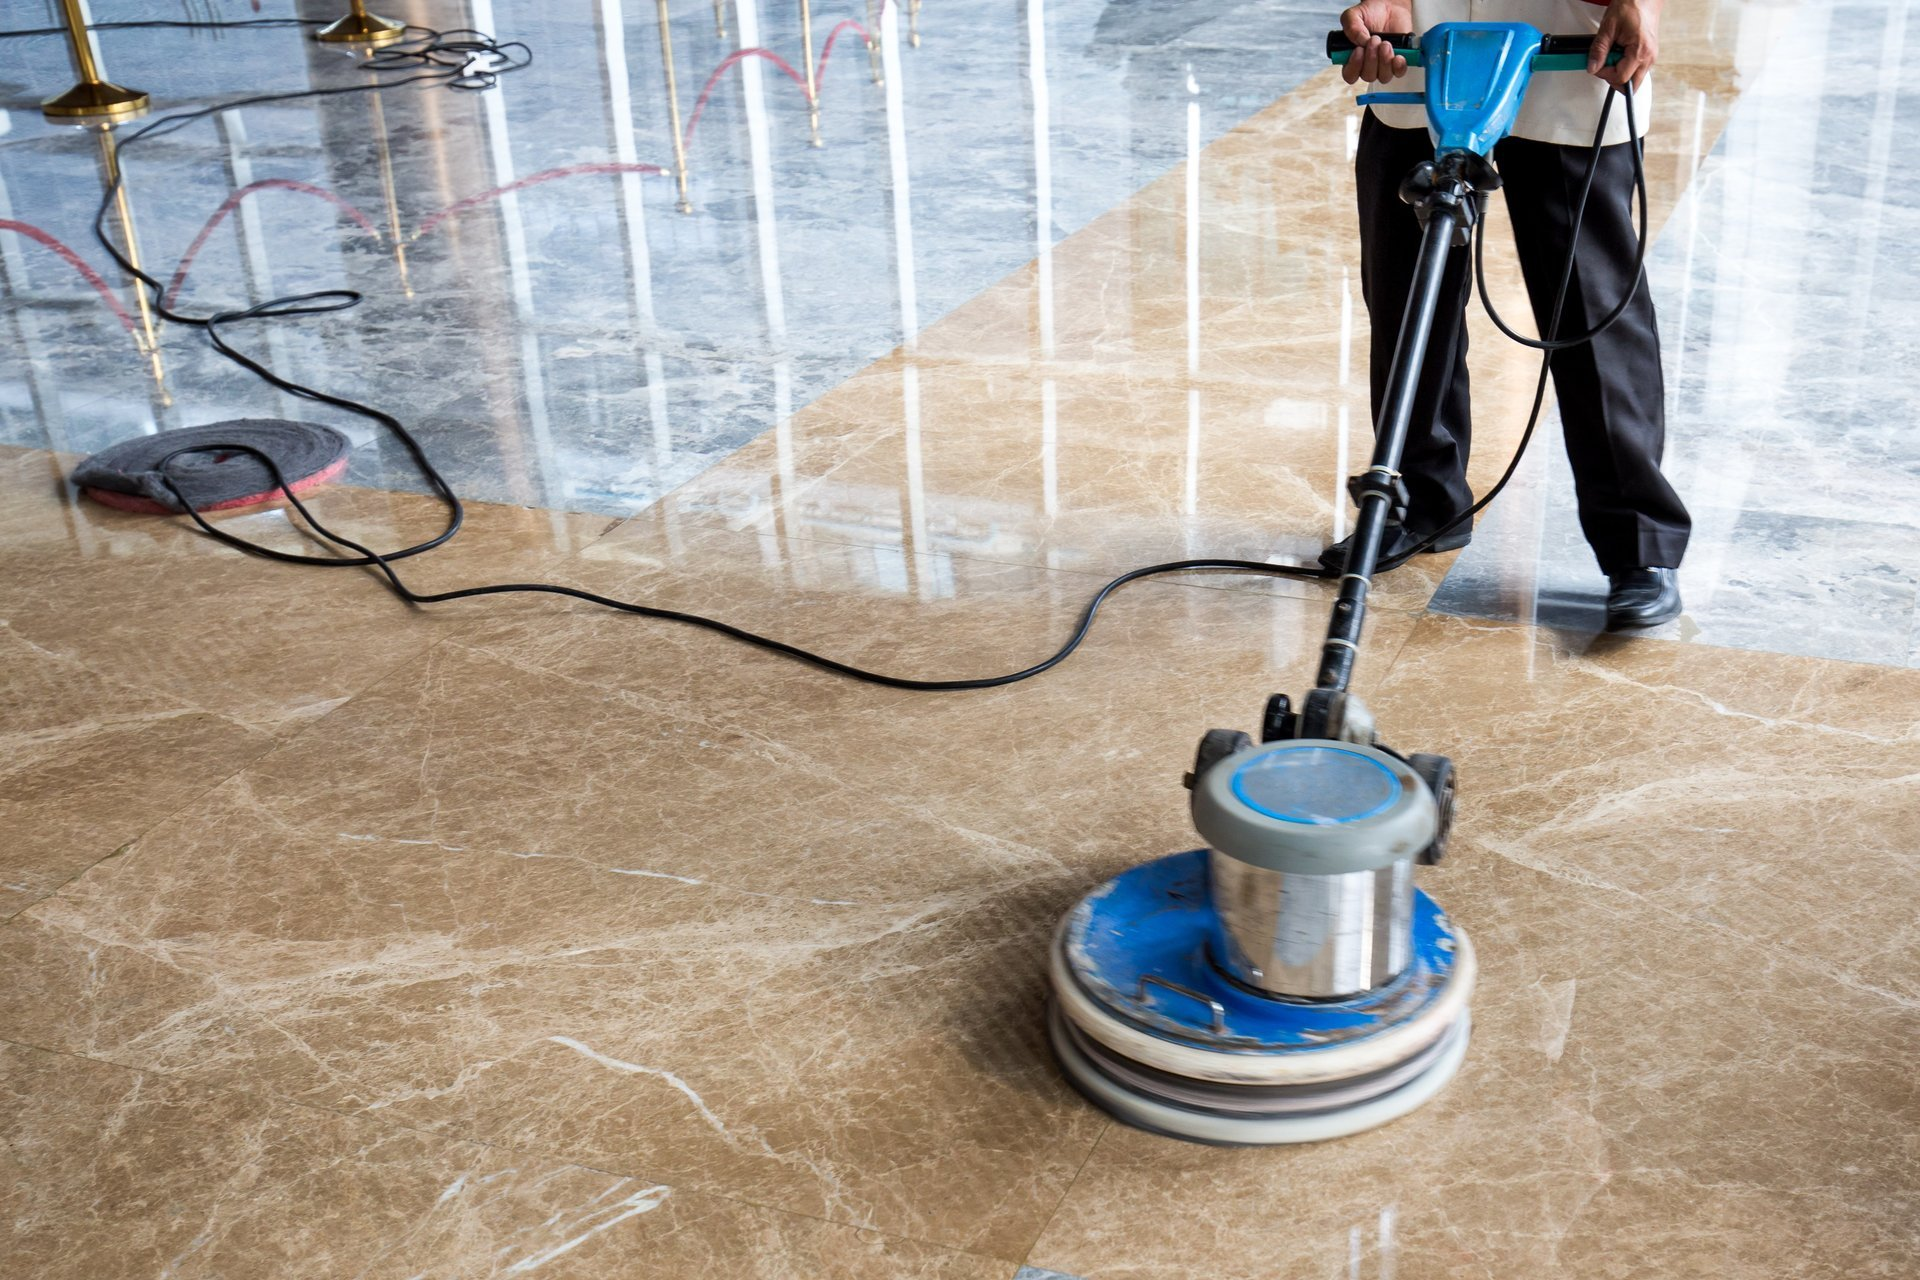 Commercial cleaning services in Wagga Wagga